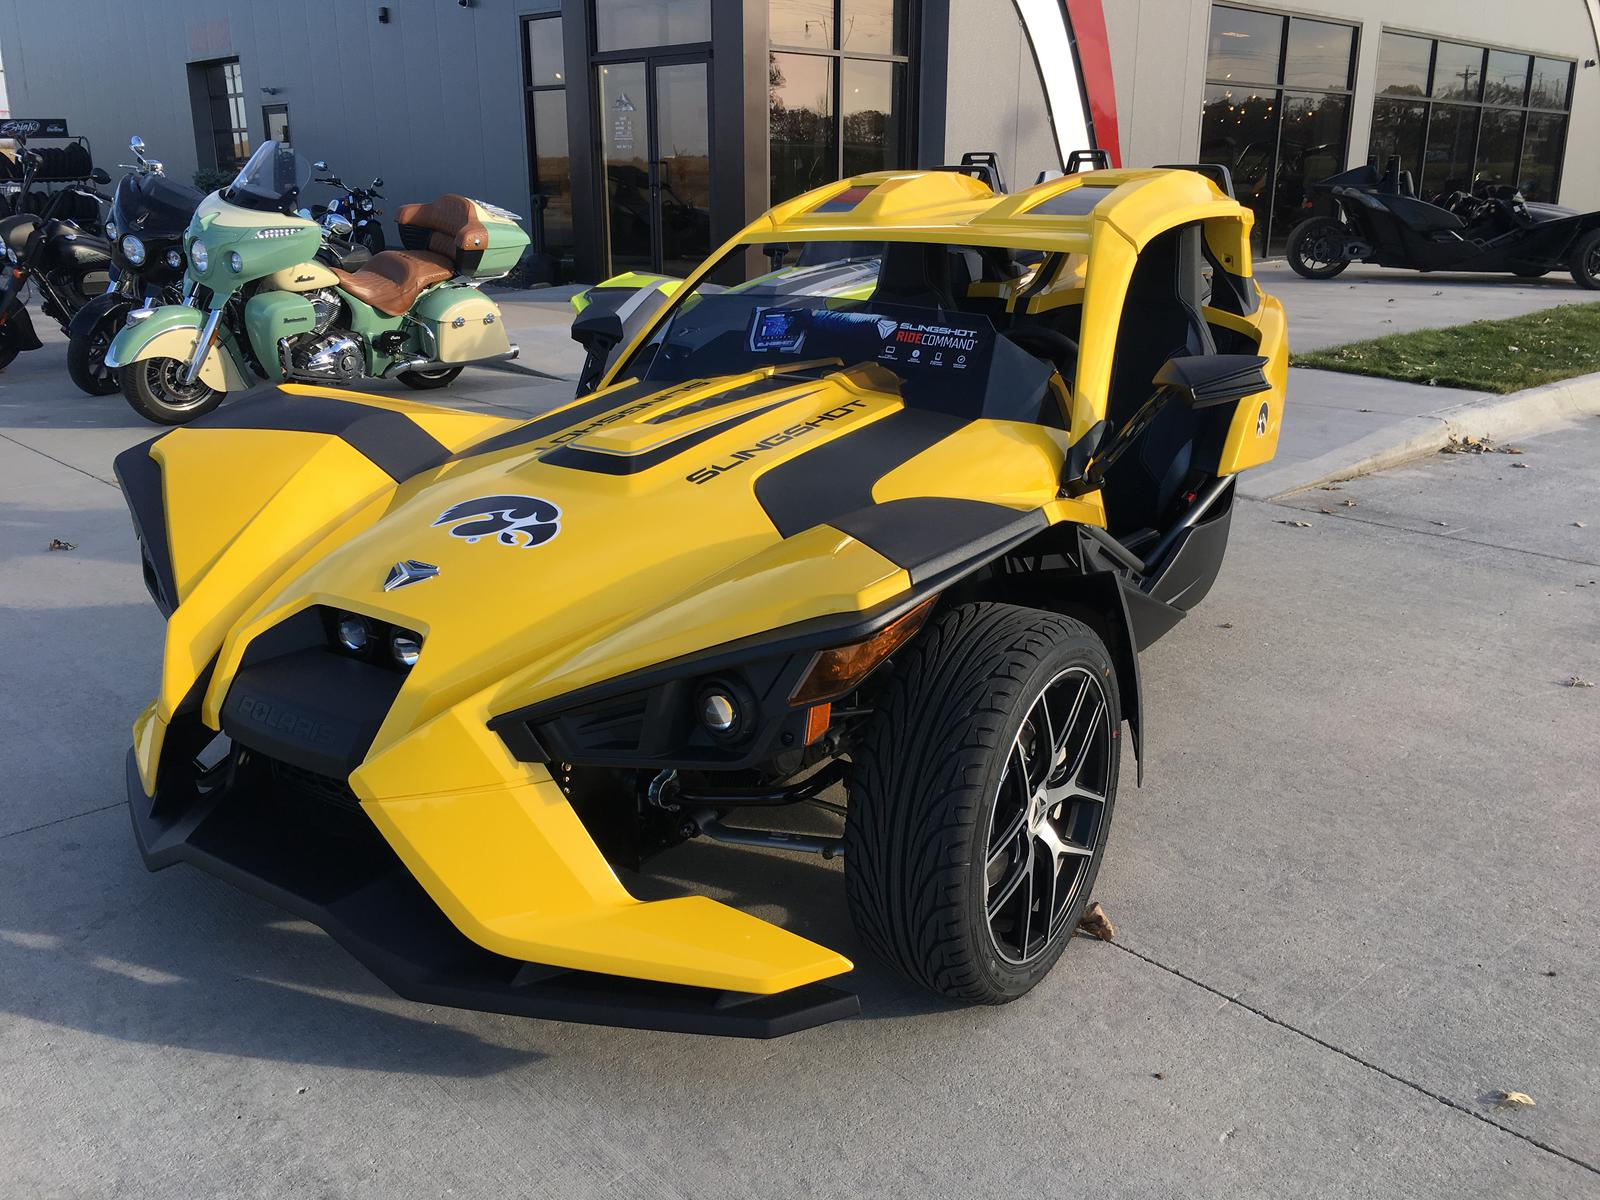 2018 Slingshot >> 2018 Slingshot Slingshot Sl Icon 49 St Daytona Yellow For Sale In